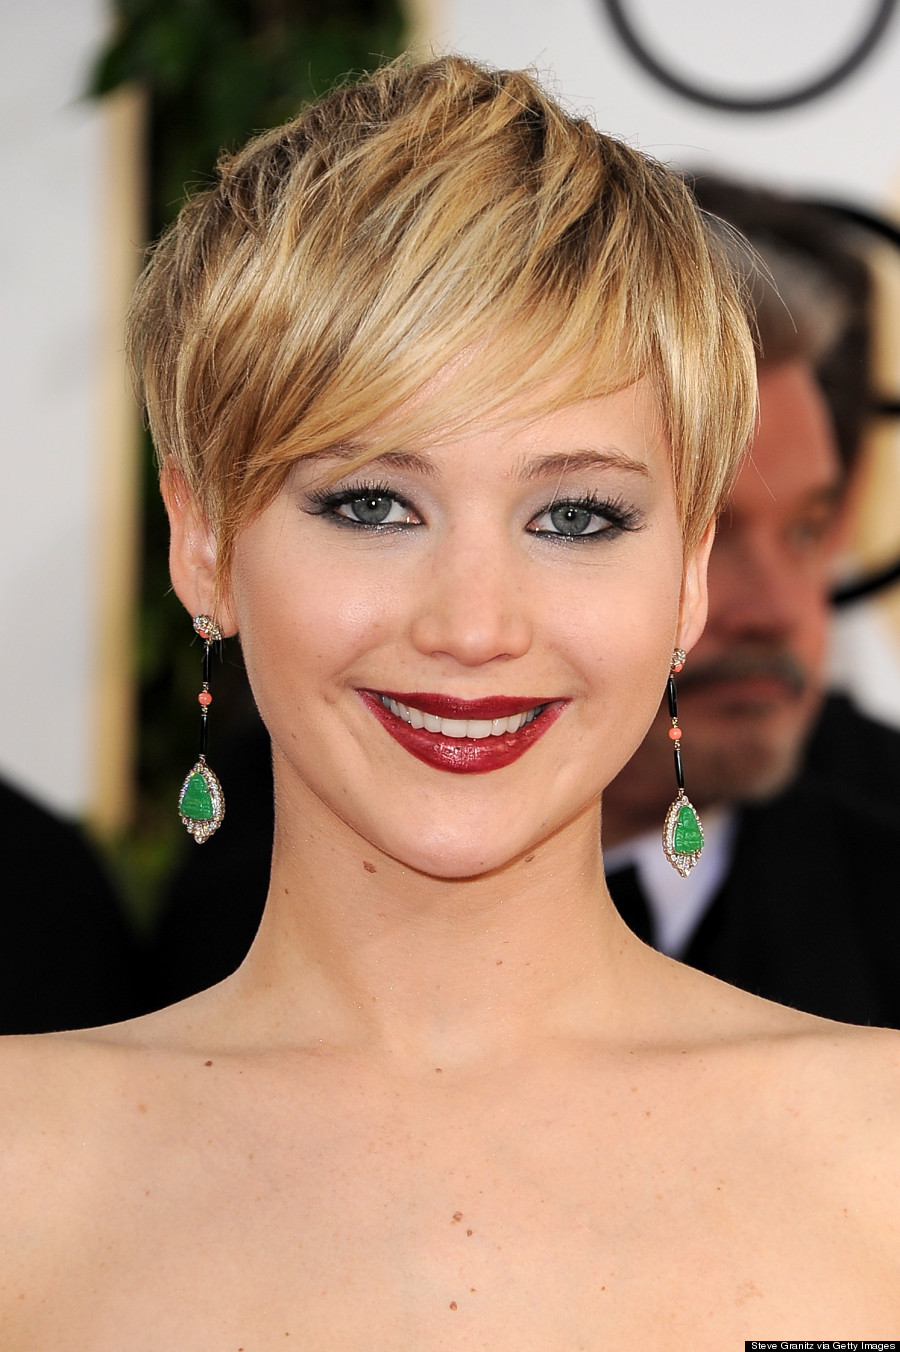 Jennifer Lawrence Makeup Tutorial: Jennifer Lawrence Golden Globes 2014: 'American Hustle